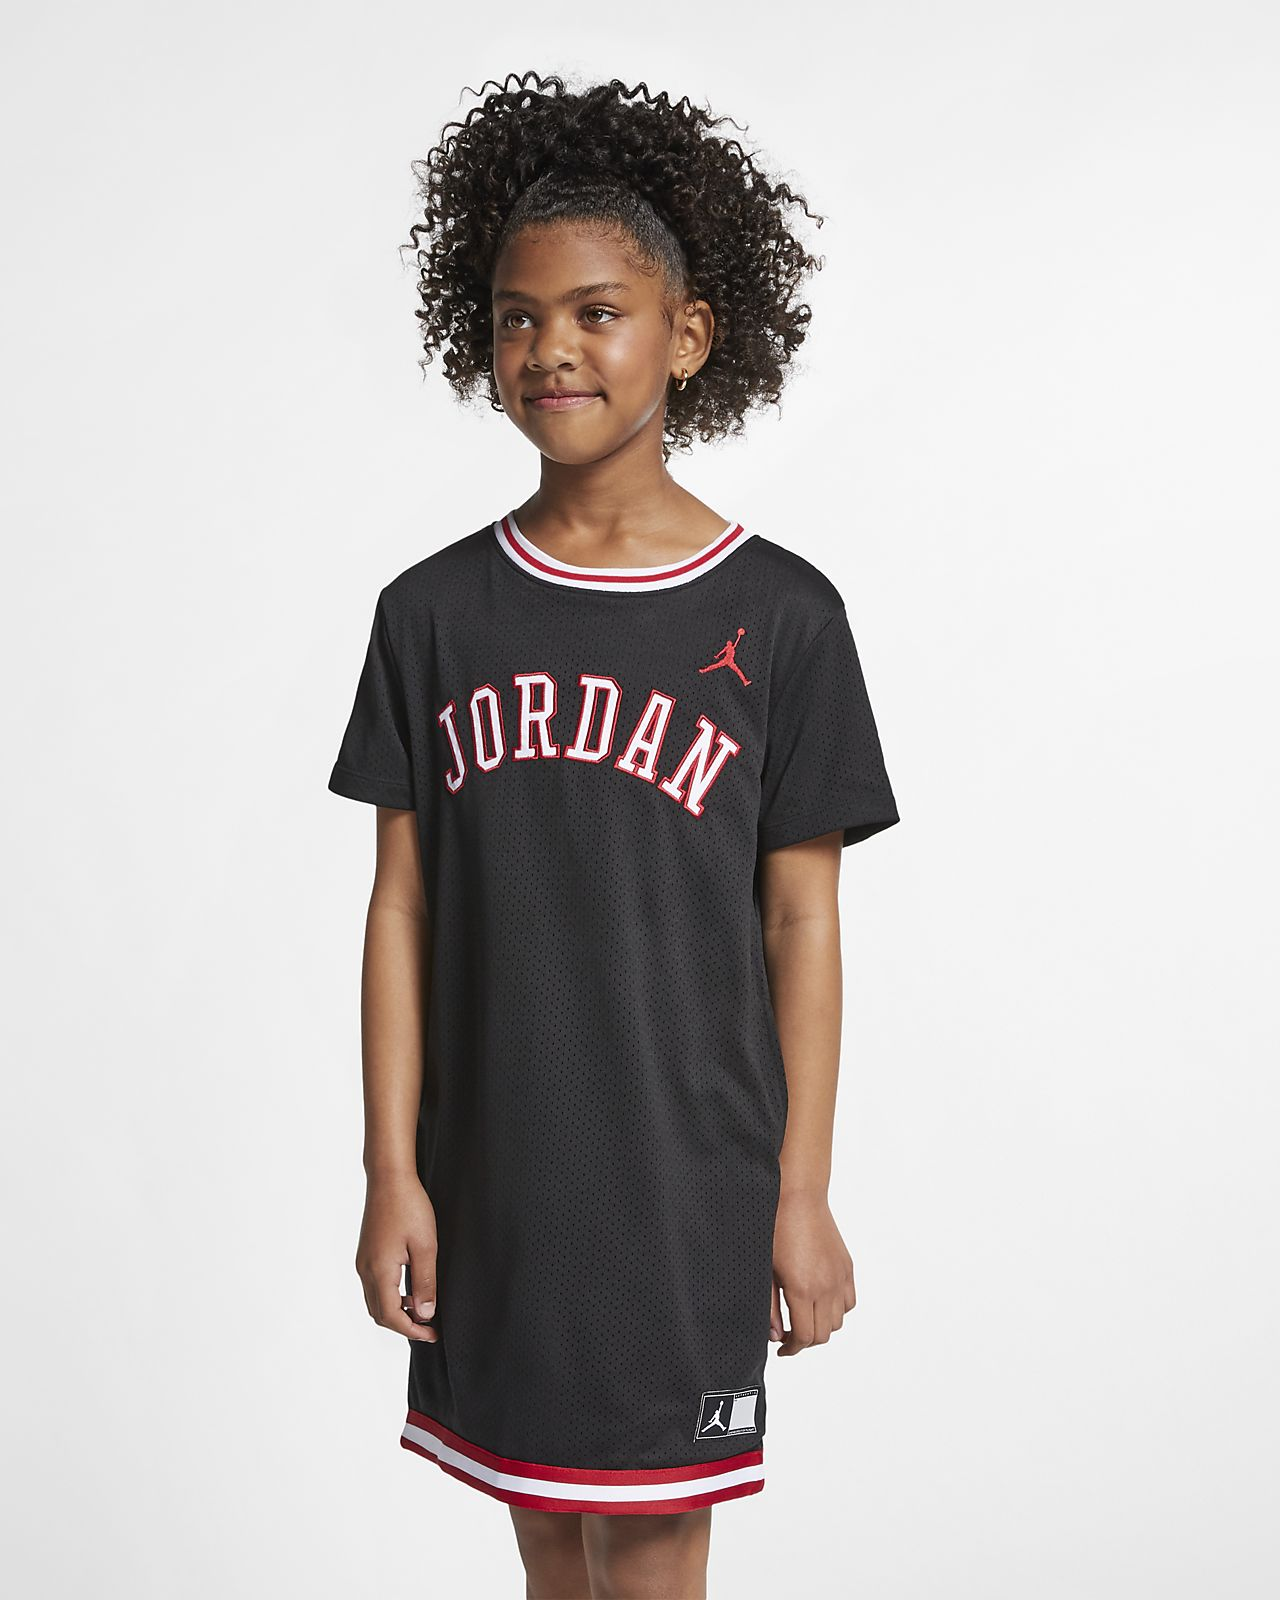 921084ffb427 Jordan Big Kids  (Girls ) Dress. Nike.com